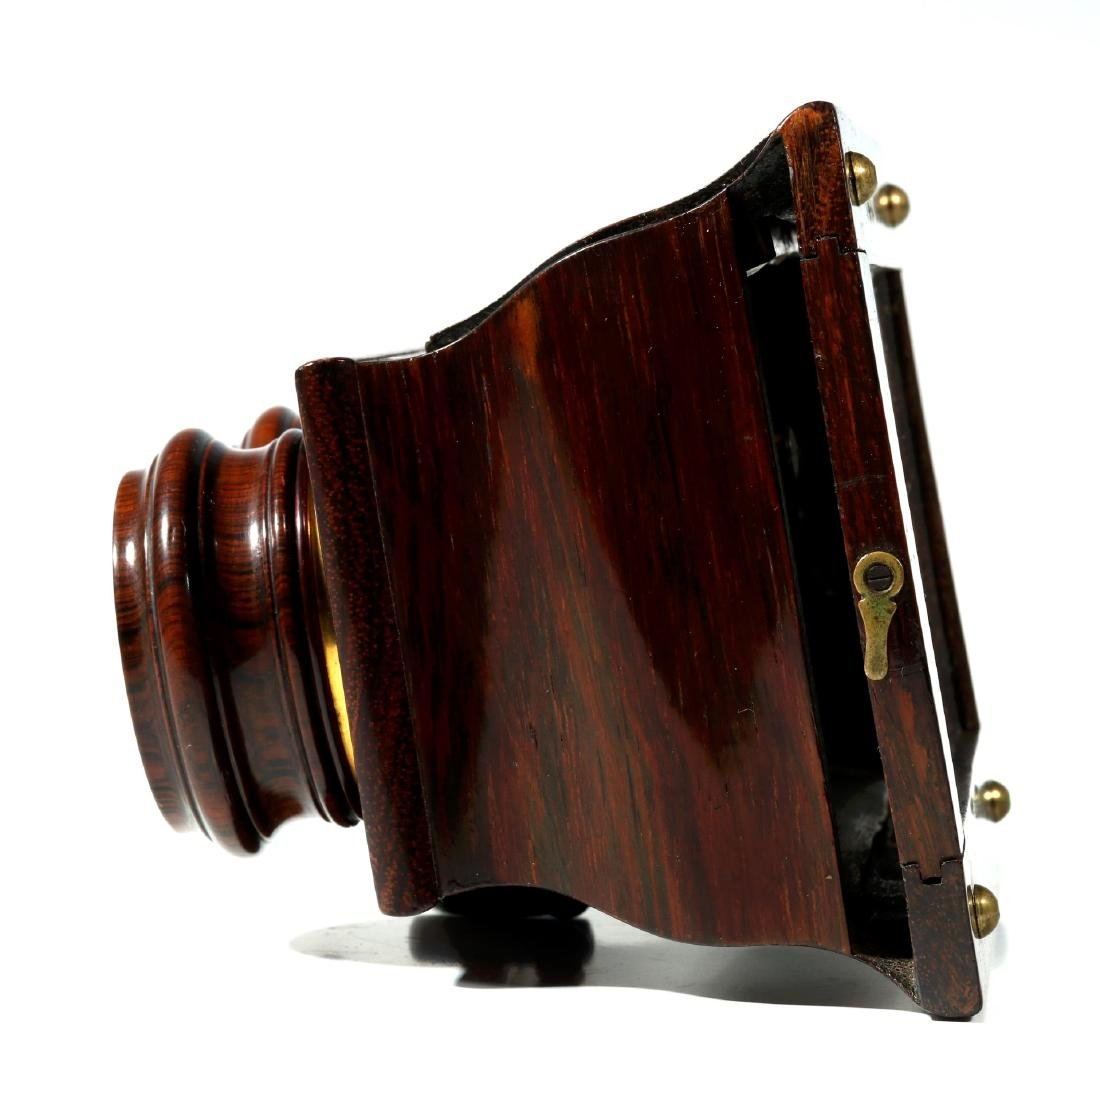 A FINE 19TH CENTURY BREWSTER STYLE STEREOSCOPE - 3